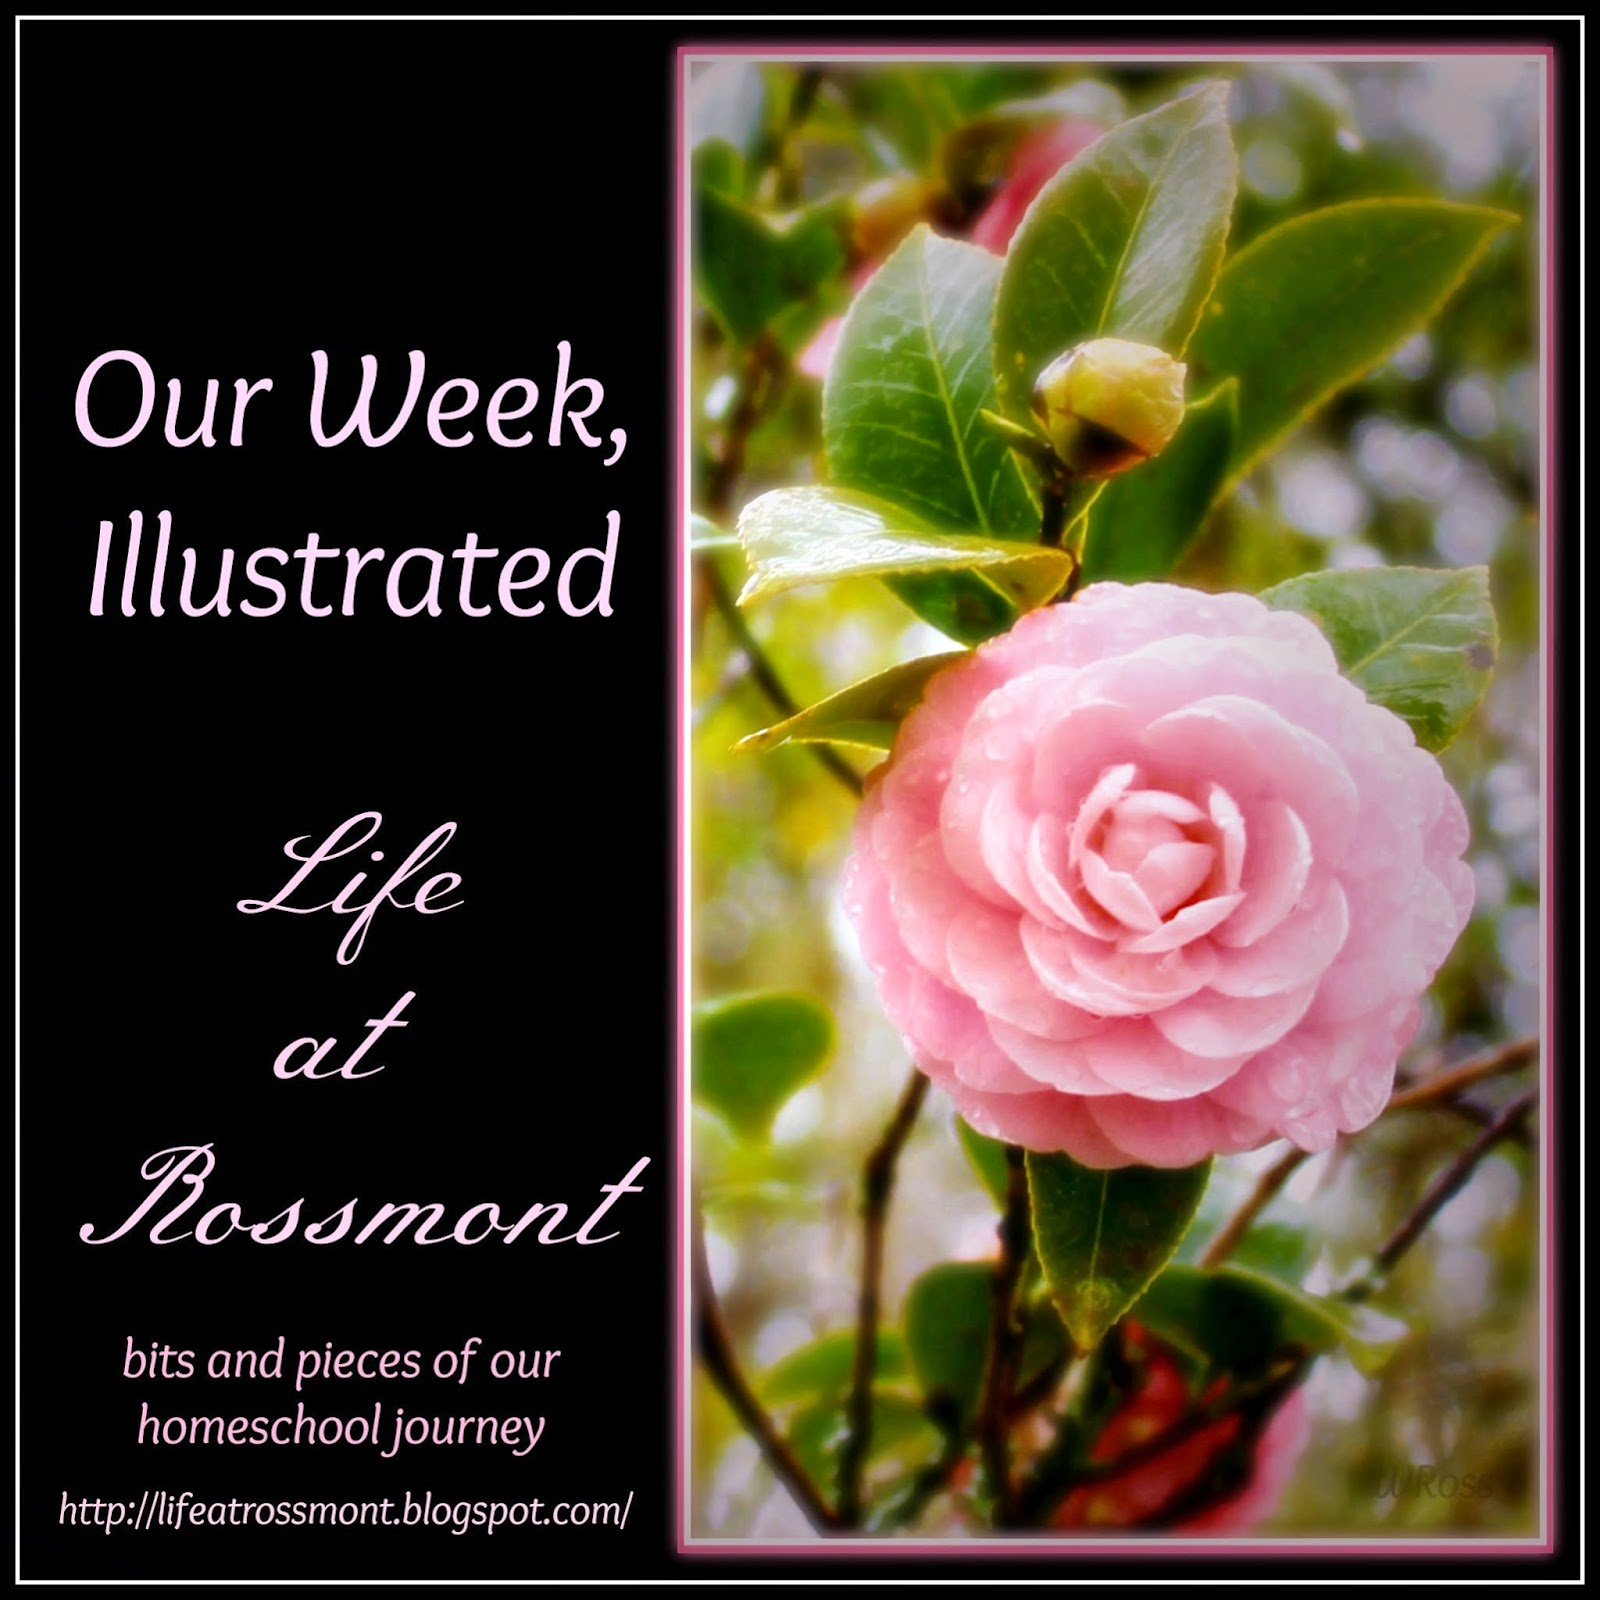 http://lifeatrossmont.blogspot.com/2015/05/our-week-illustrated-april-26-may-2.html